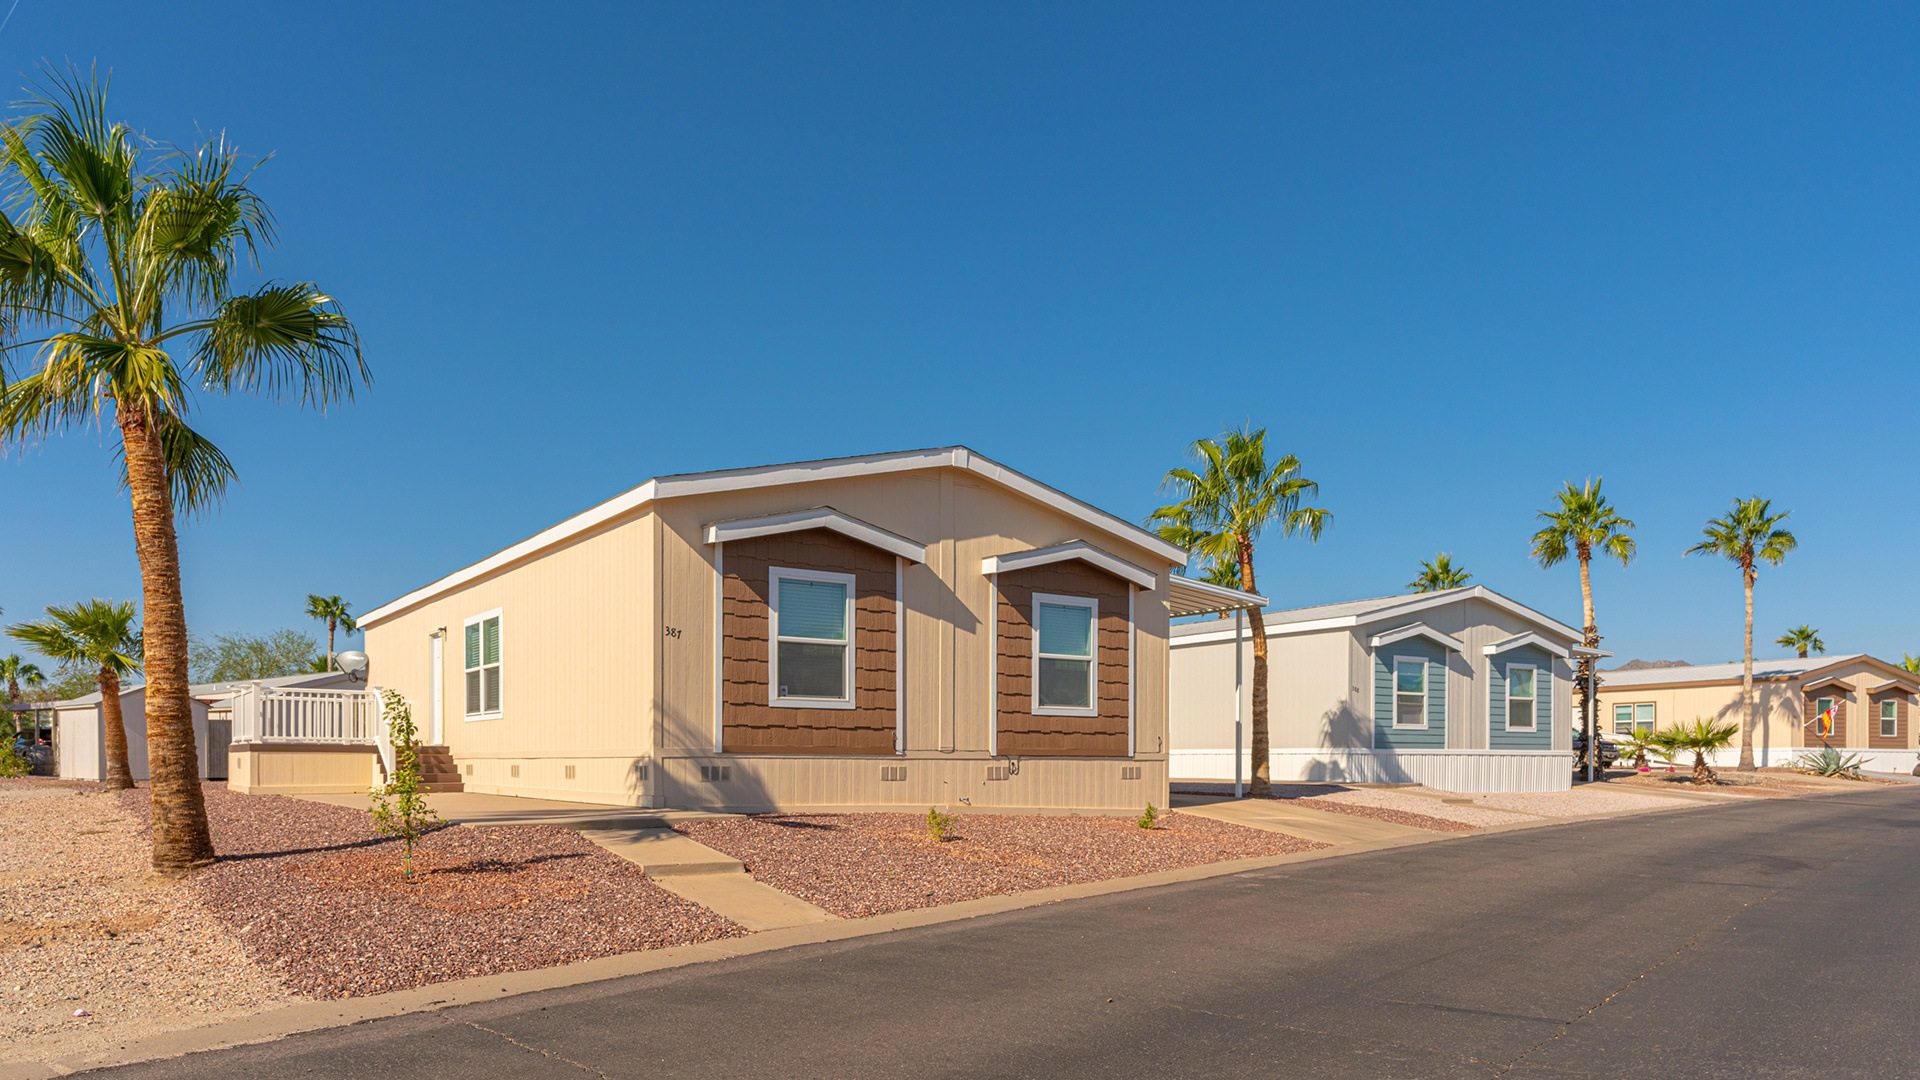 Sun Communities Manufactured Homes Acquisitions